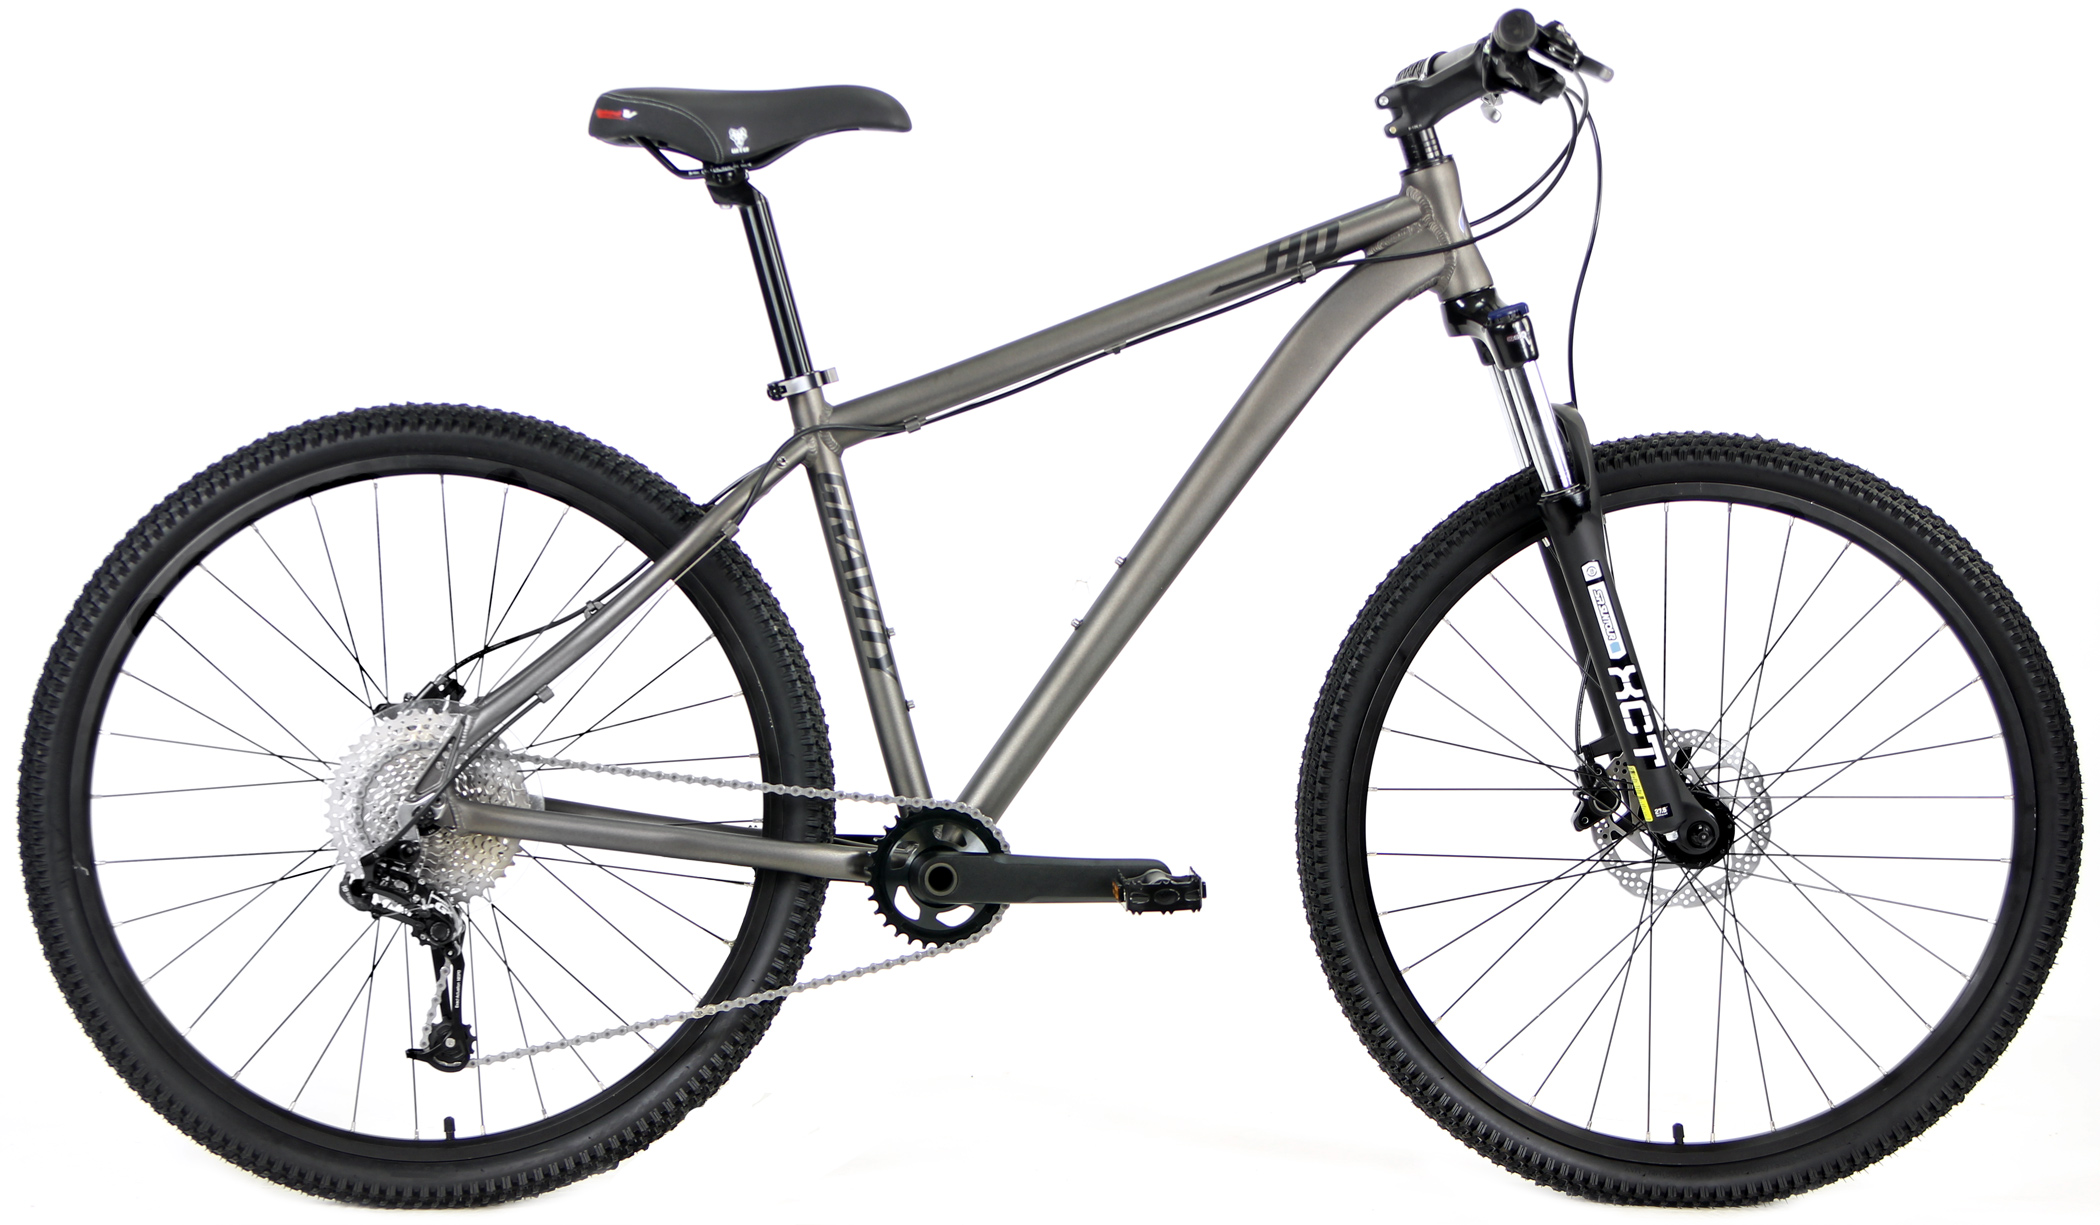 Bikes Gravity HD 27.5 / 29 inch wheels 1x10 Front Suspension Disc Brake Mountain Bikes Image